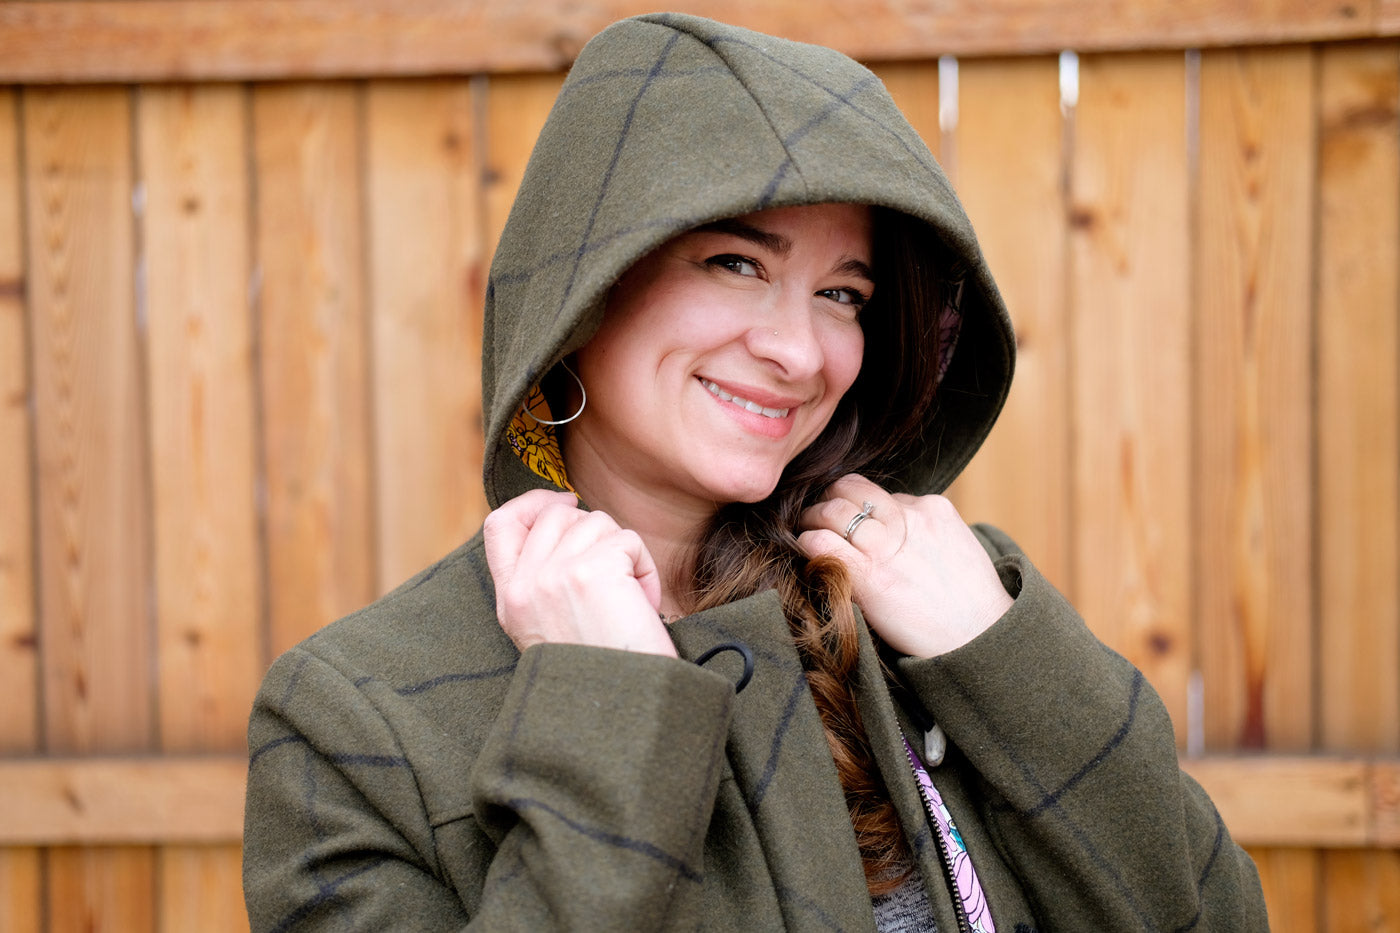 Tiffani wearing the hood of her Cascade Duffle Coat